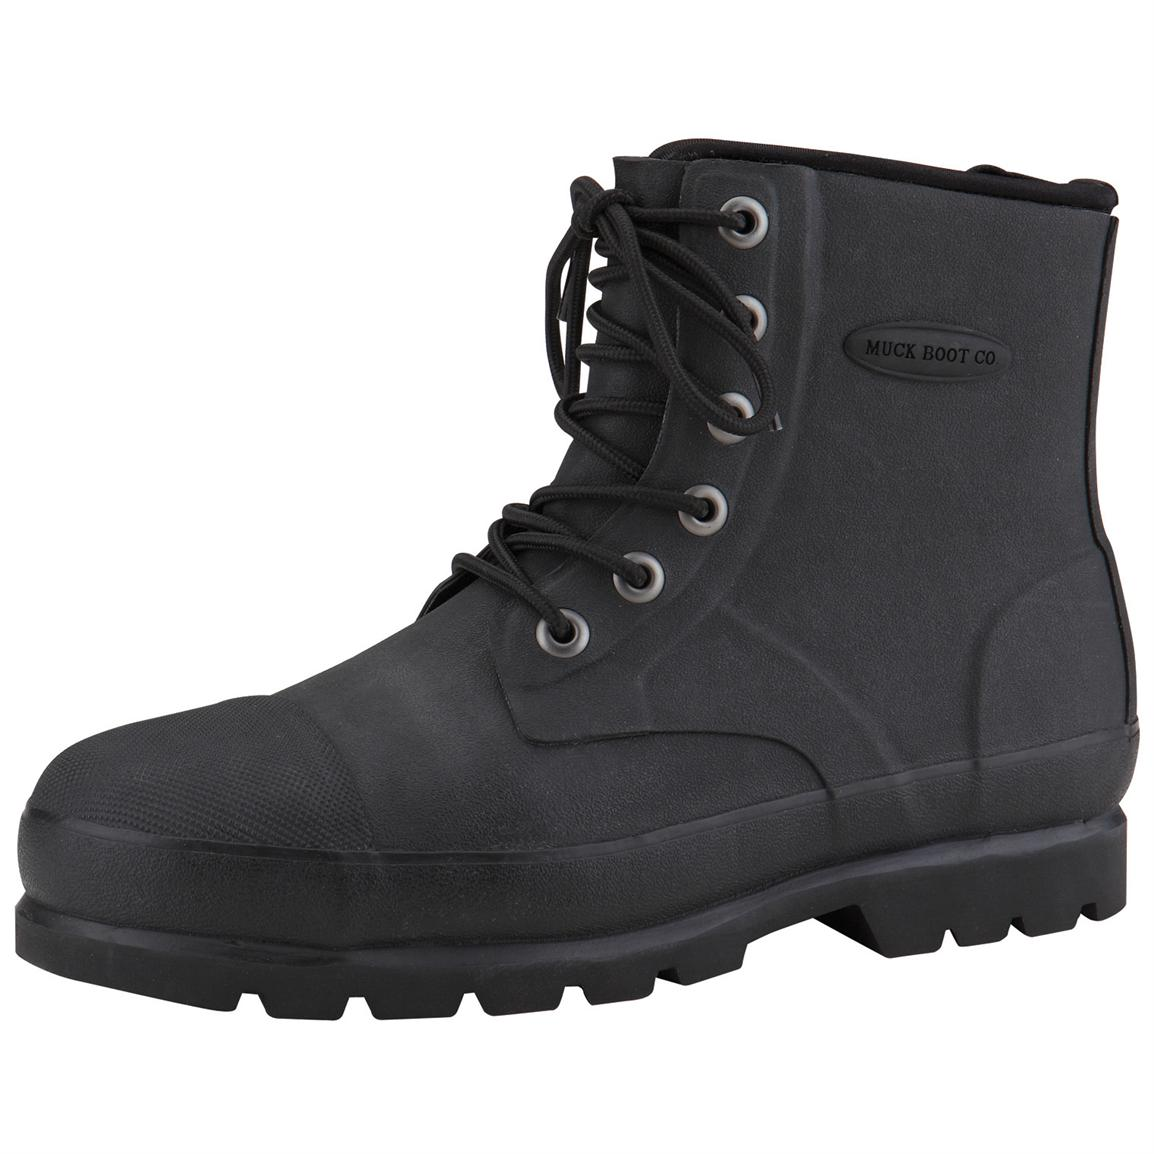 Men's Muck Boots™ Foundation Waterproof Steel Toe Work Boots ...